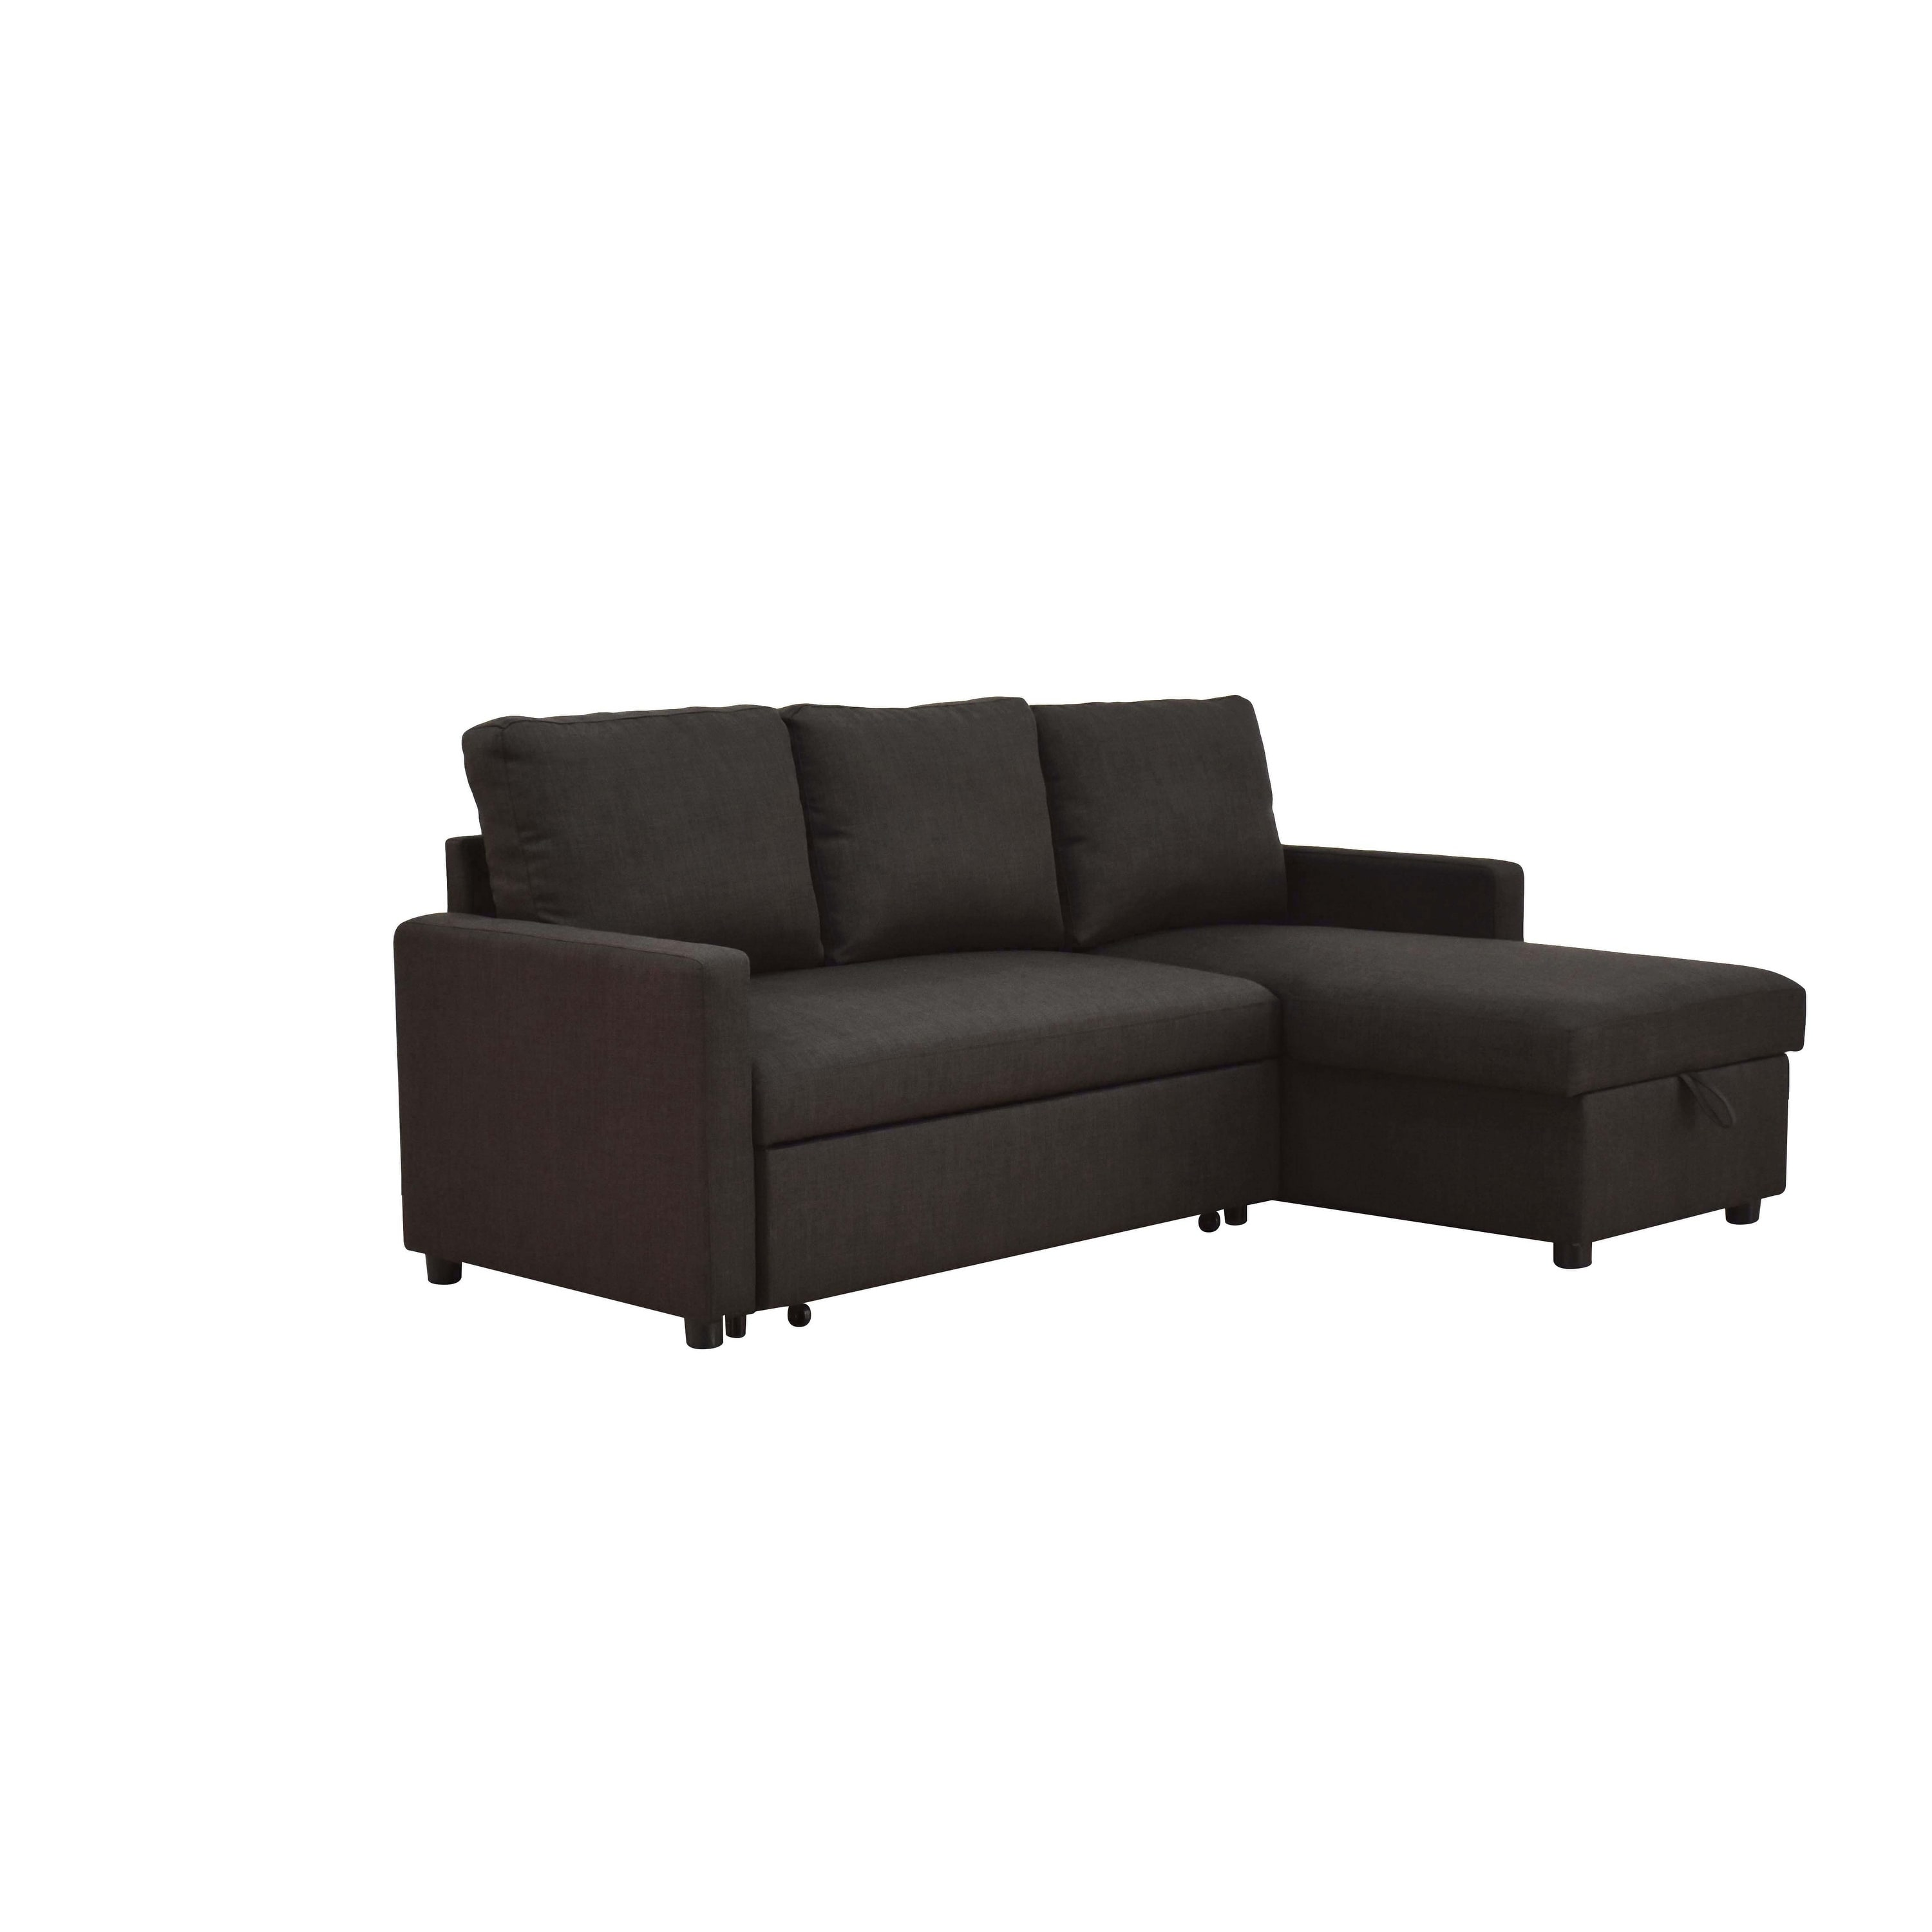 ACME Hiltons Sectional Sleeper Sofa in Charcoal Linen - Walmart.com